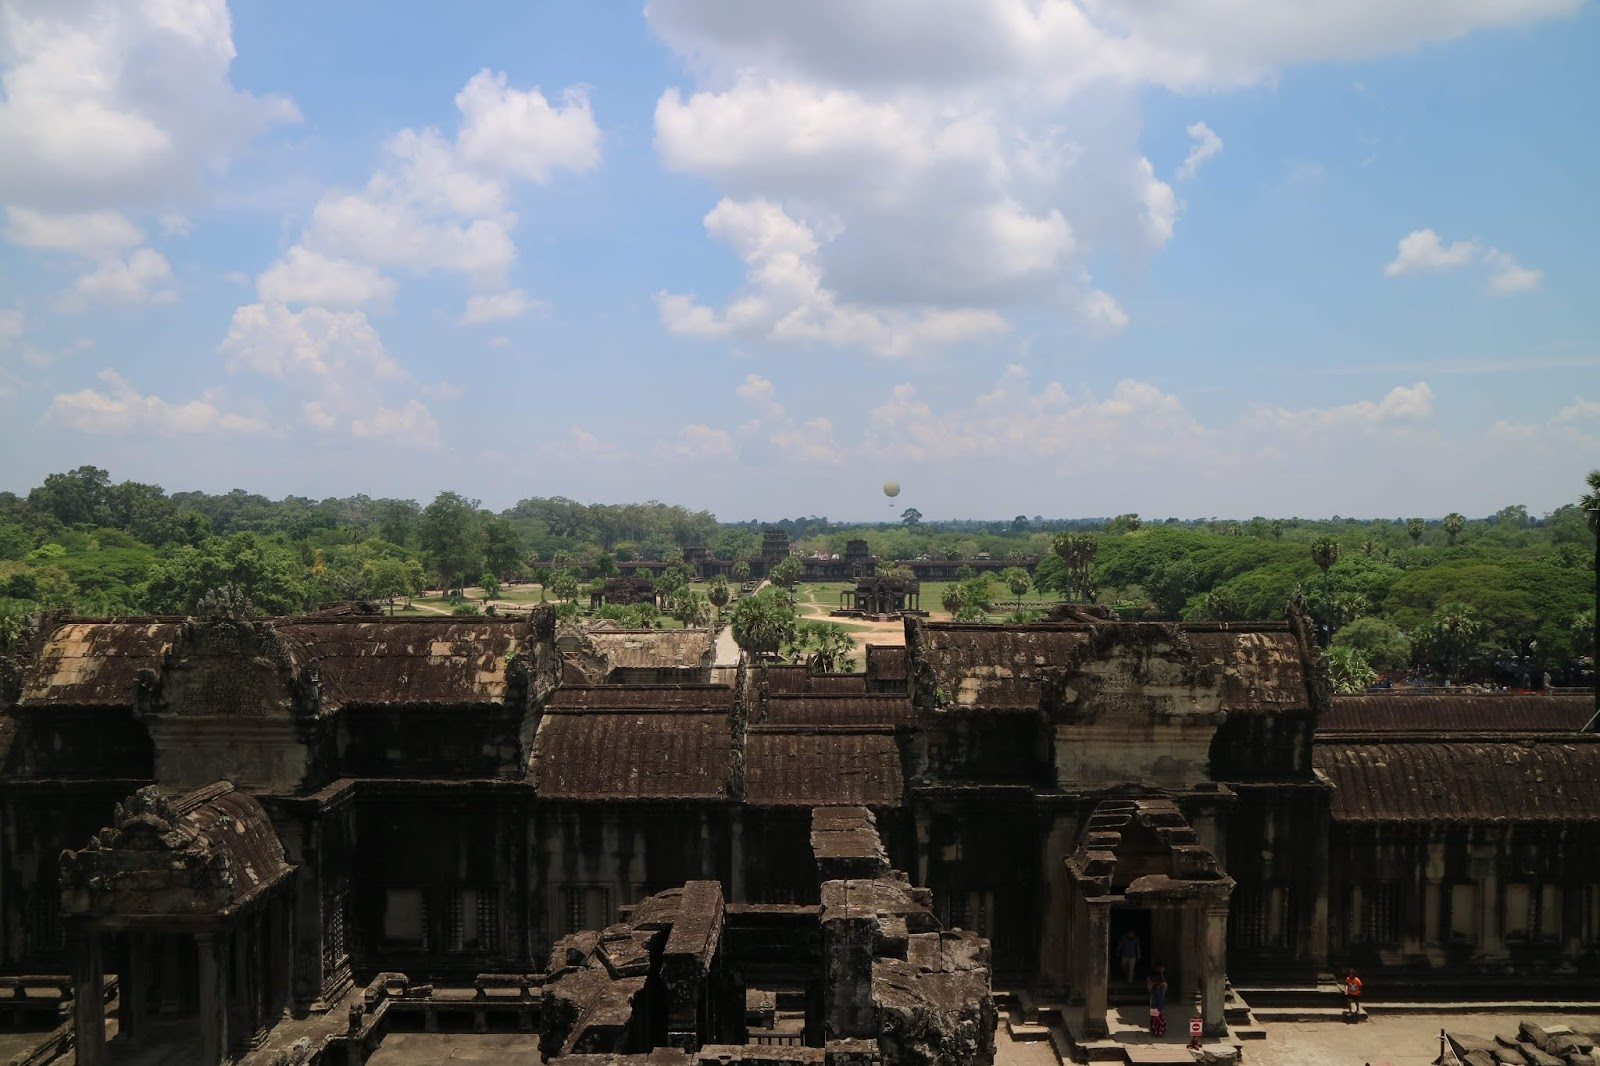 The view from Angkor Wat